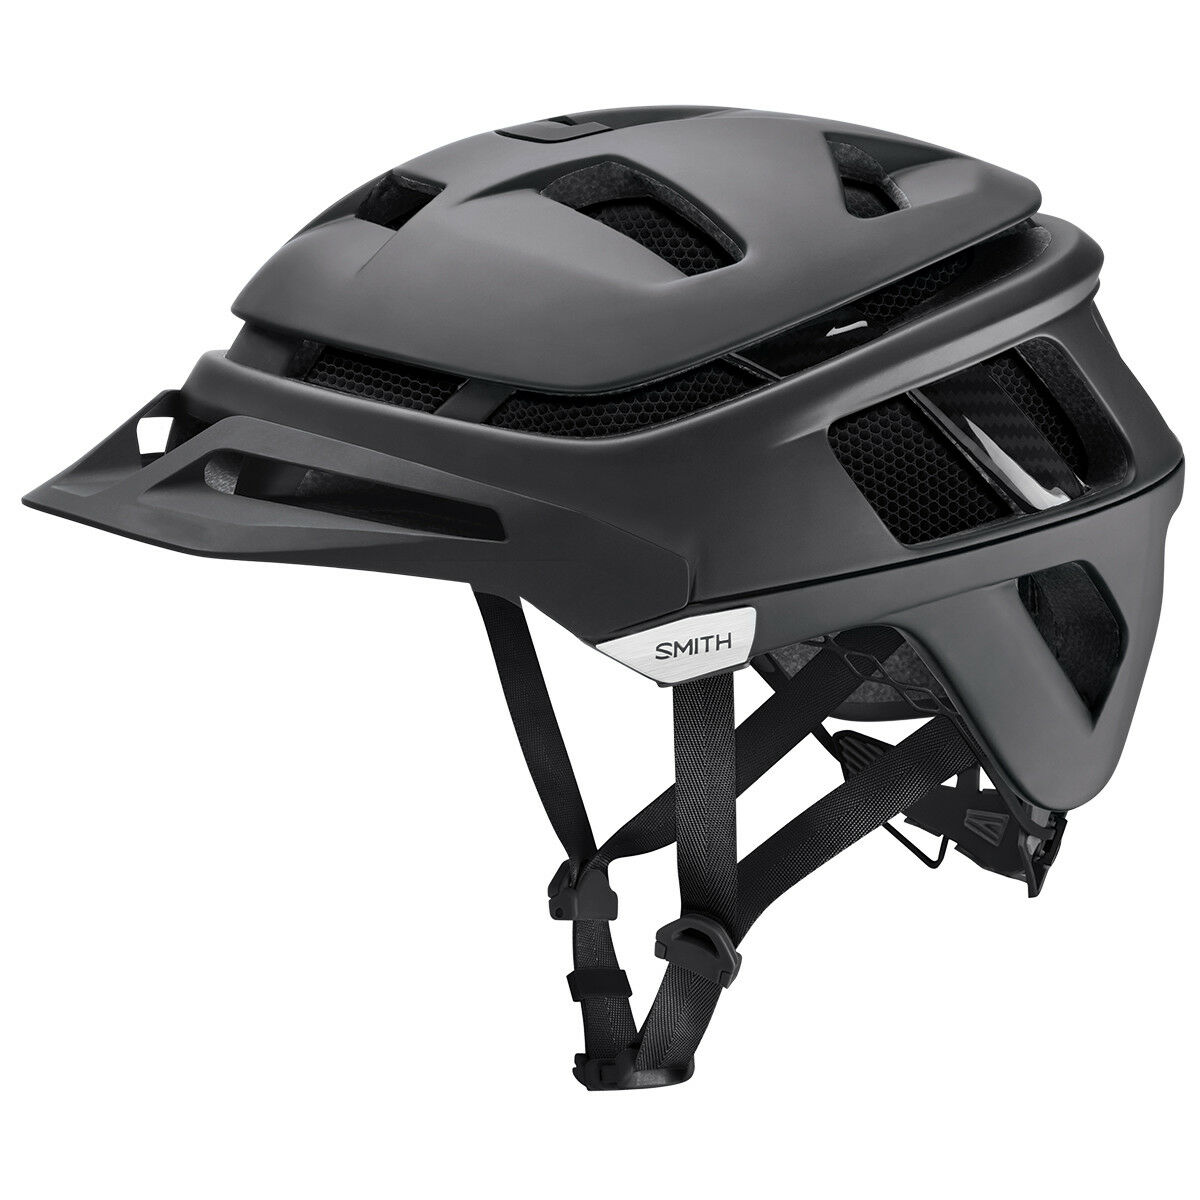 Casco de ciclo MTB Mountainbike SMITH Forefront Negro Mate oscuridad S   m   L